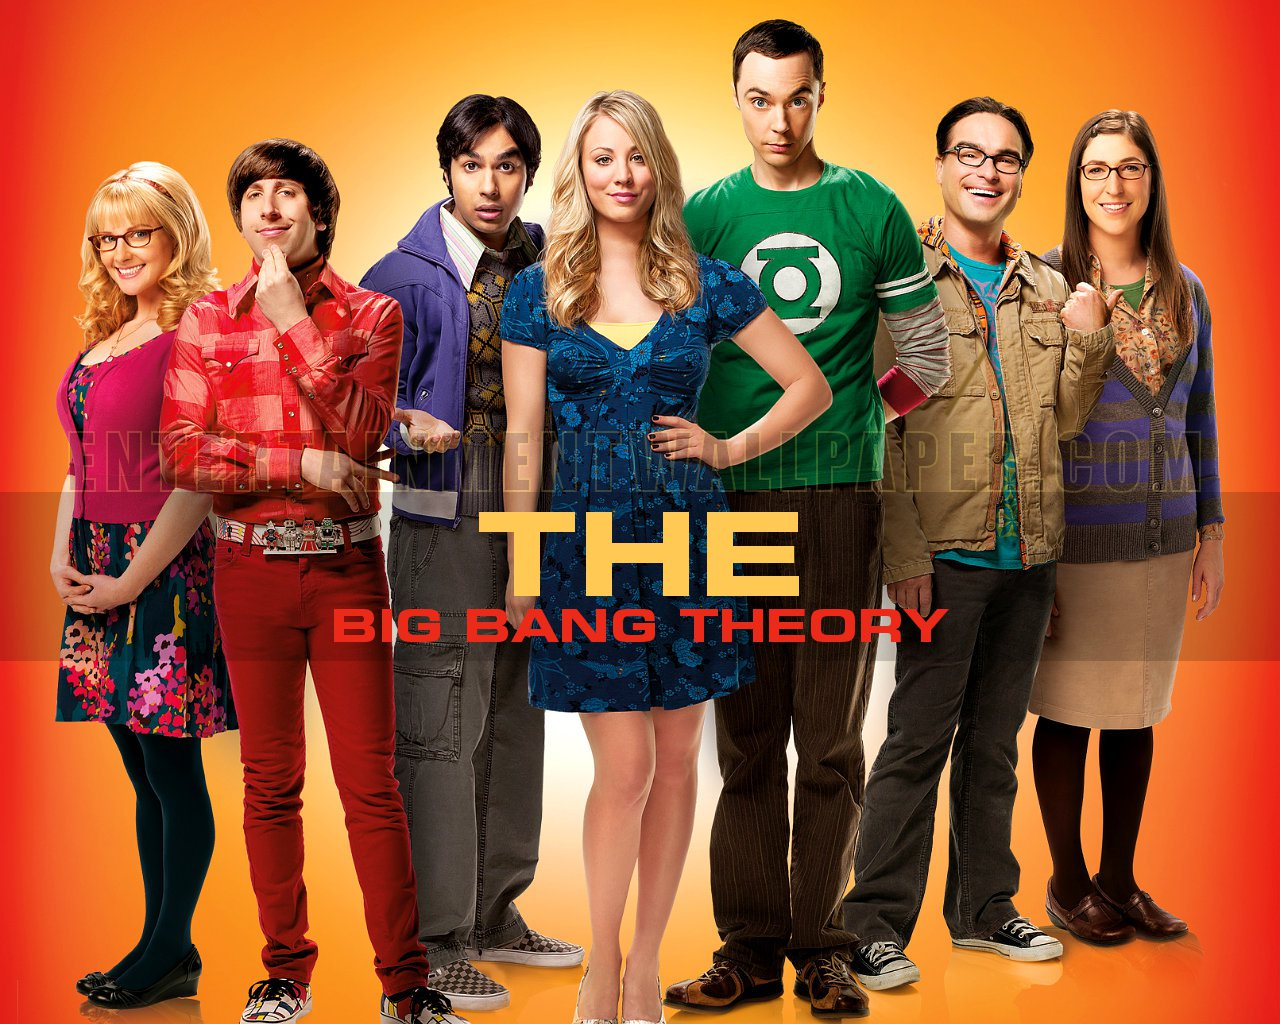 http://4.bp.blogspot.com/-txgLAmCqlJo/UV4up4PdyFI/AAAAAAAAD7Q/mToqoj1Bg1E/s1600/the_big_bang_theory_wallpaper_1280x1024_3.jpg